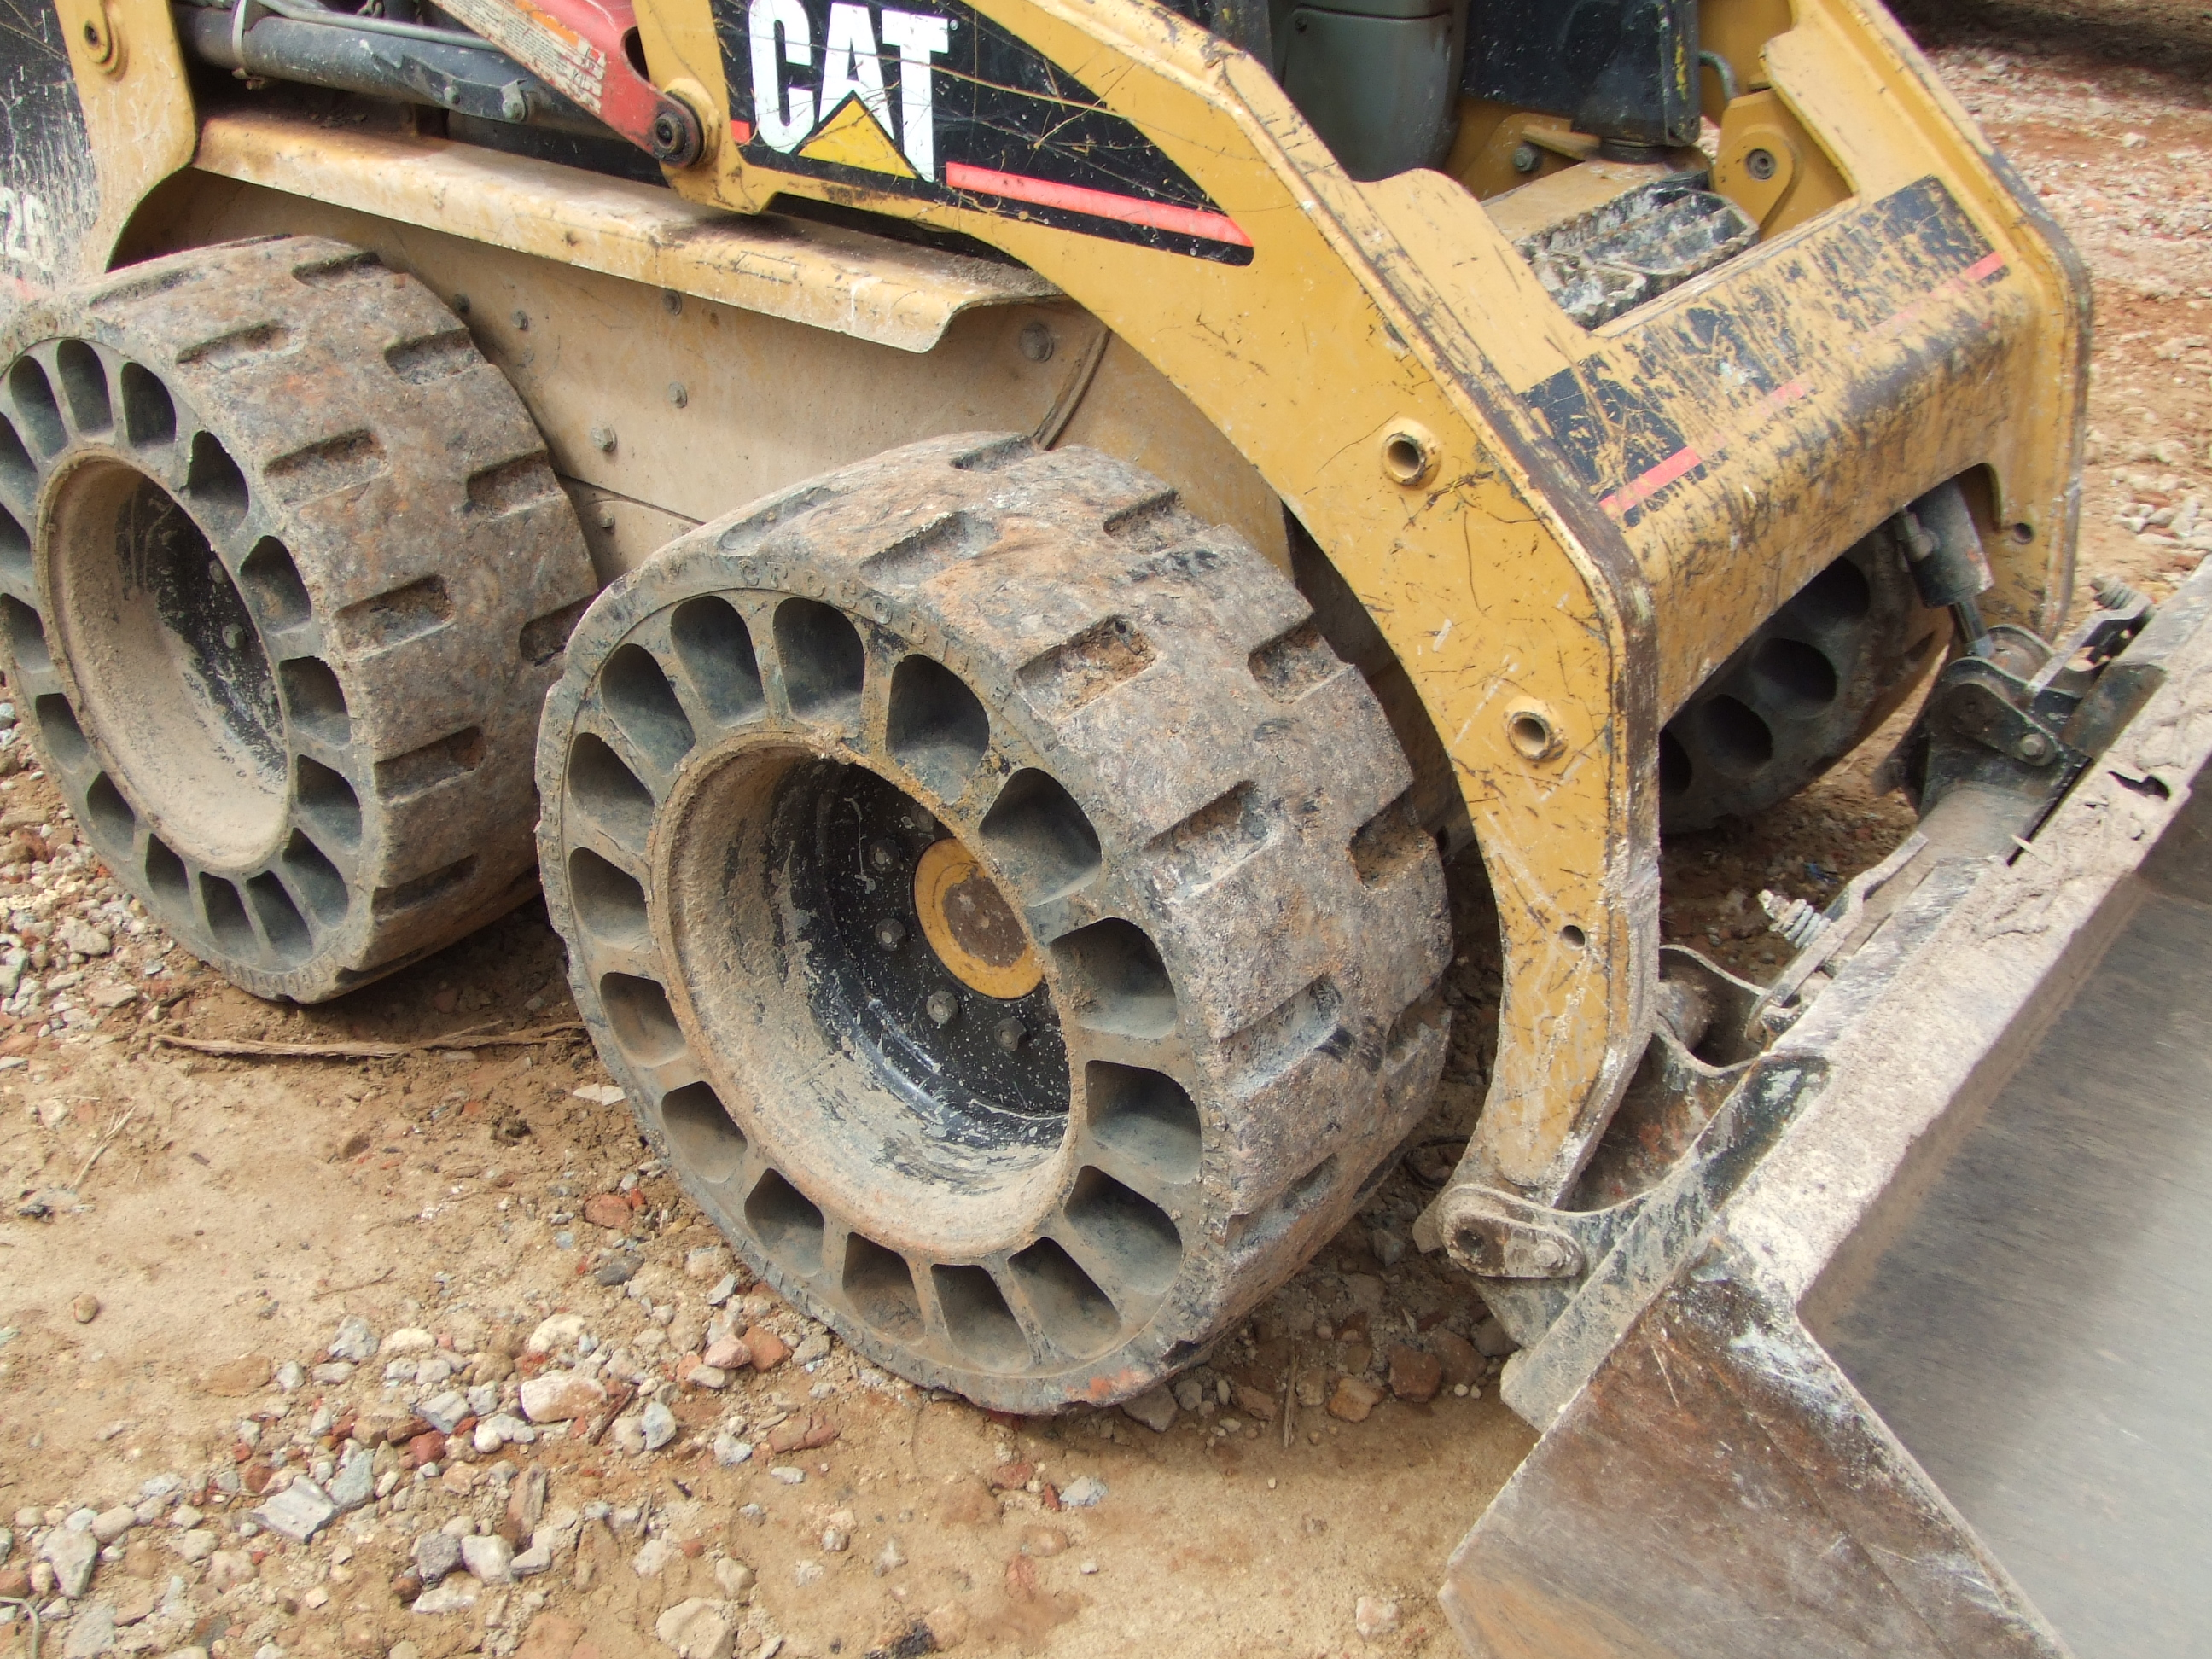 Filename crocodile_airless_tyres_fitted_to_a_caterpillar_skid_steer_loader jpg